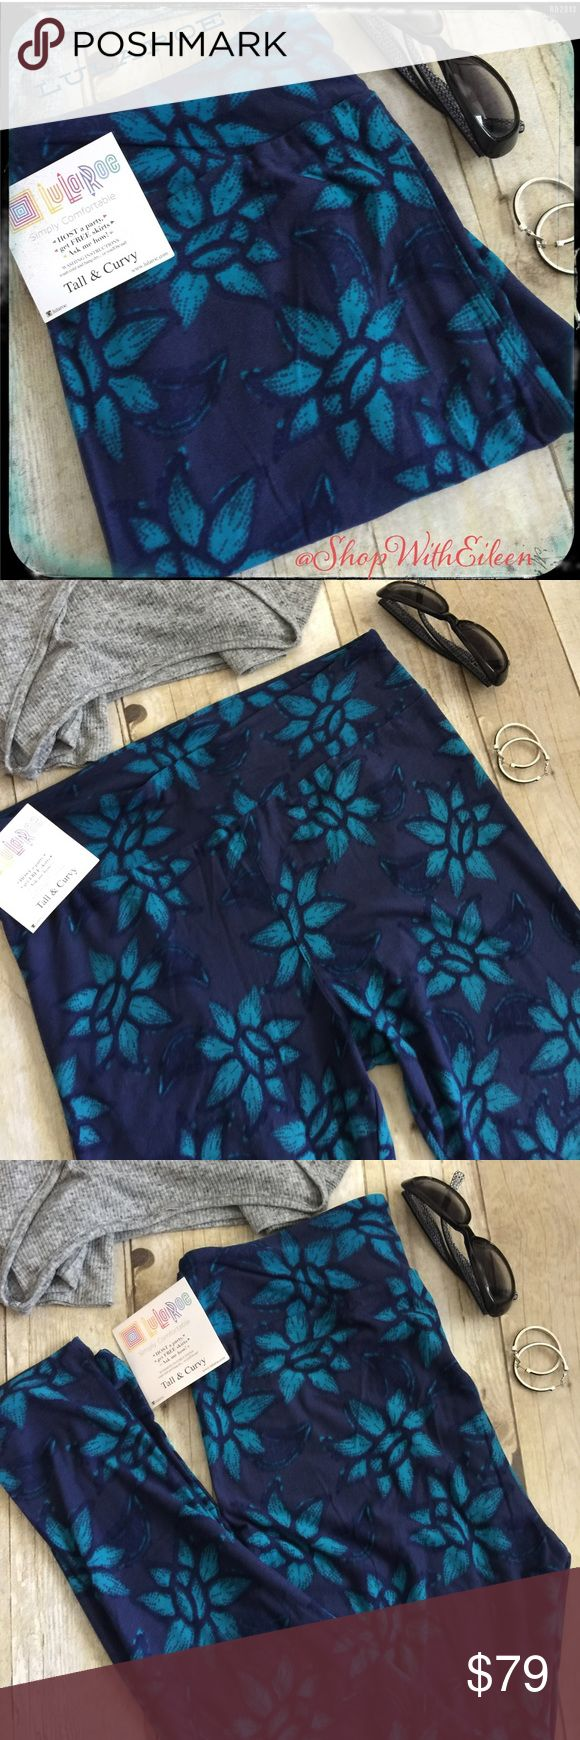 LulaRoe NAVY BLUE PEACE SIGN FLOWER TC Leggings  LulaRoe BOHO CHIC NAVY BLUE PEACE SIGN FLOWERS TC Leggings! GORGEOUS!!!! Navy blue background with peace sign flowers scattered all over these leggings! So BOHO CHIC ! Made in Indonesia. *I am not a consultant... I'm just an addict that loves searching for hard to find {next to impossible} patterns! Supply + Demand= Price LuLaRoe Pants Leggings